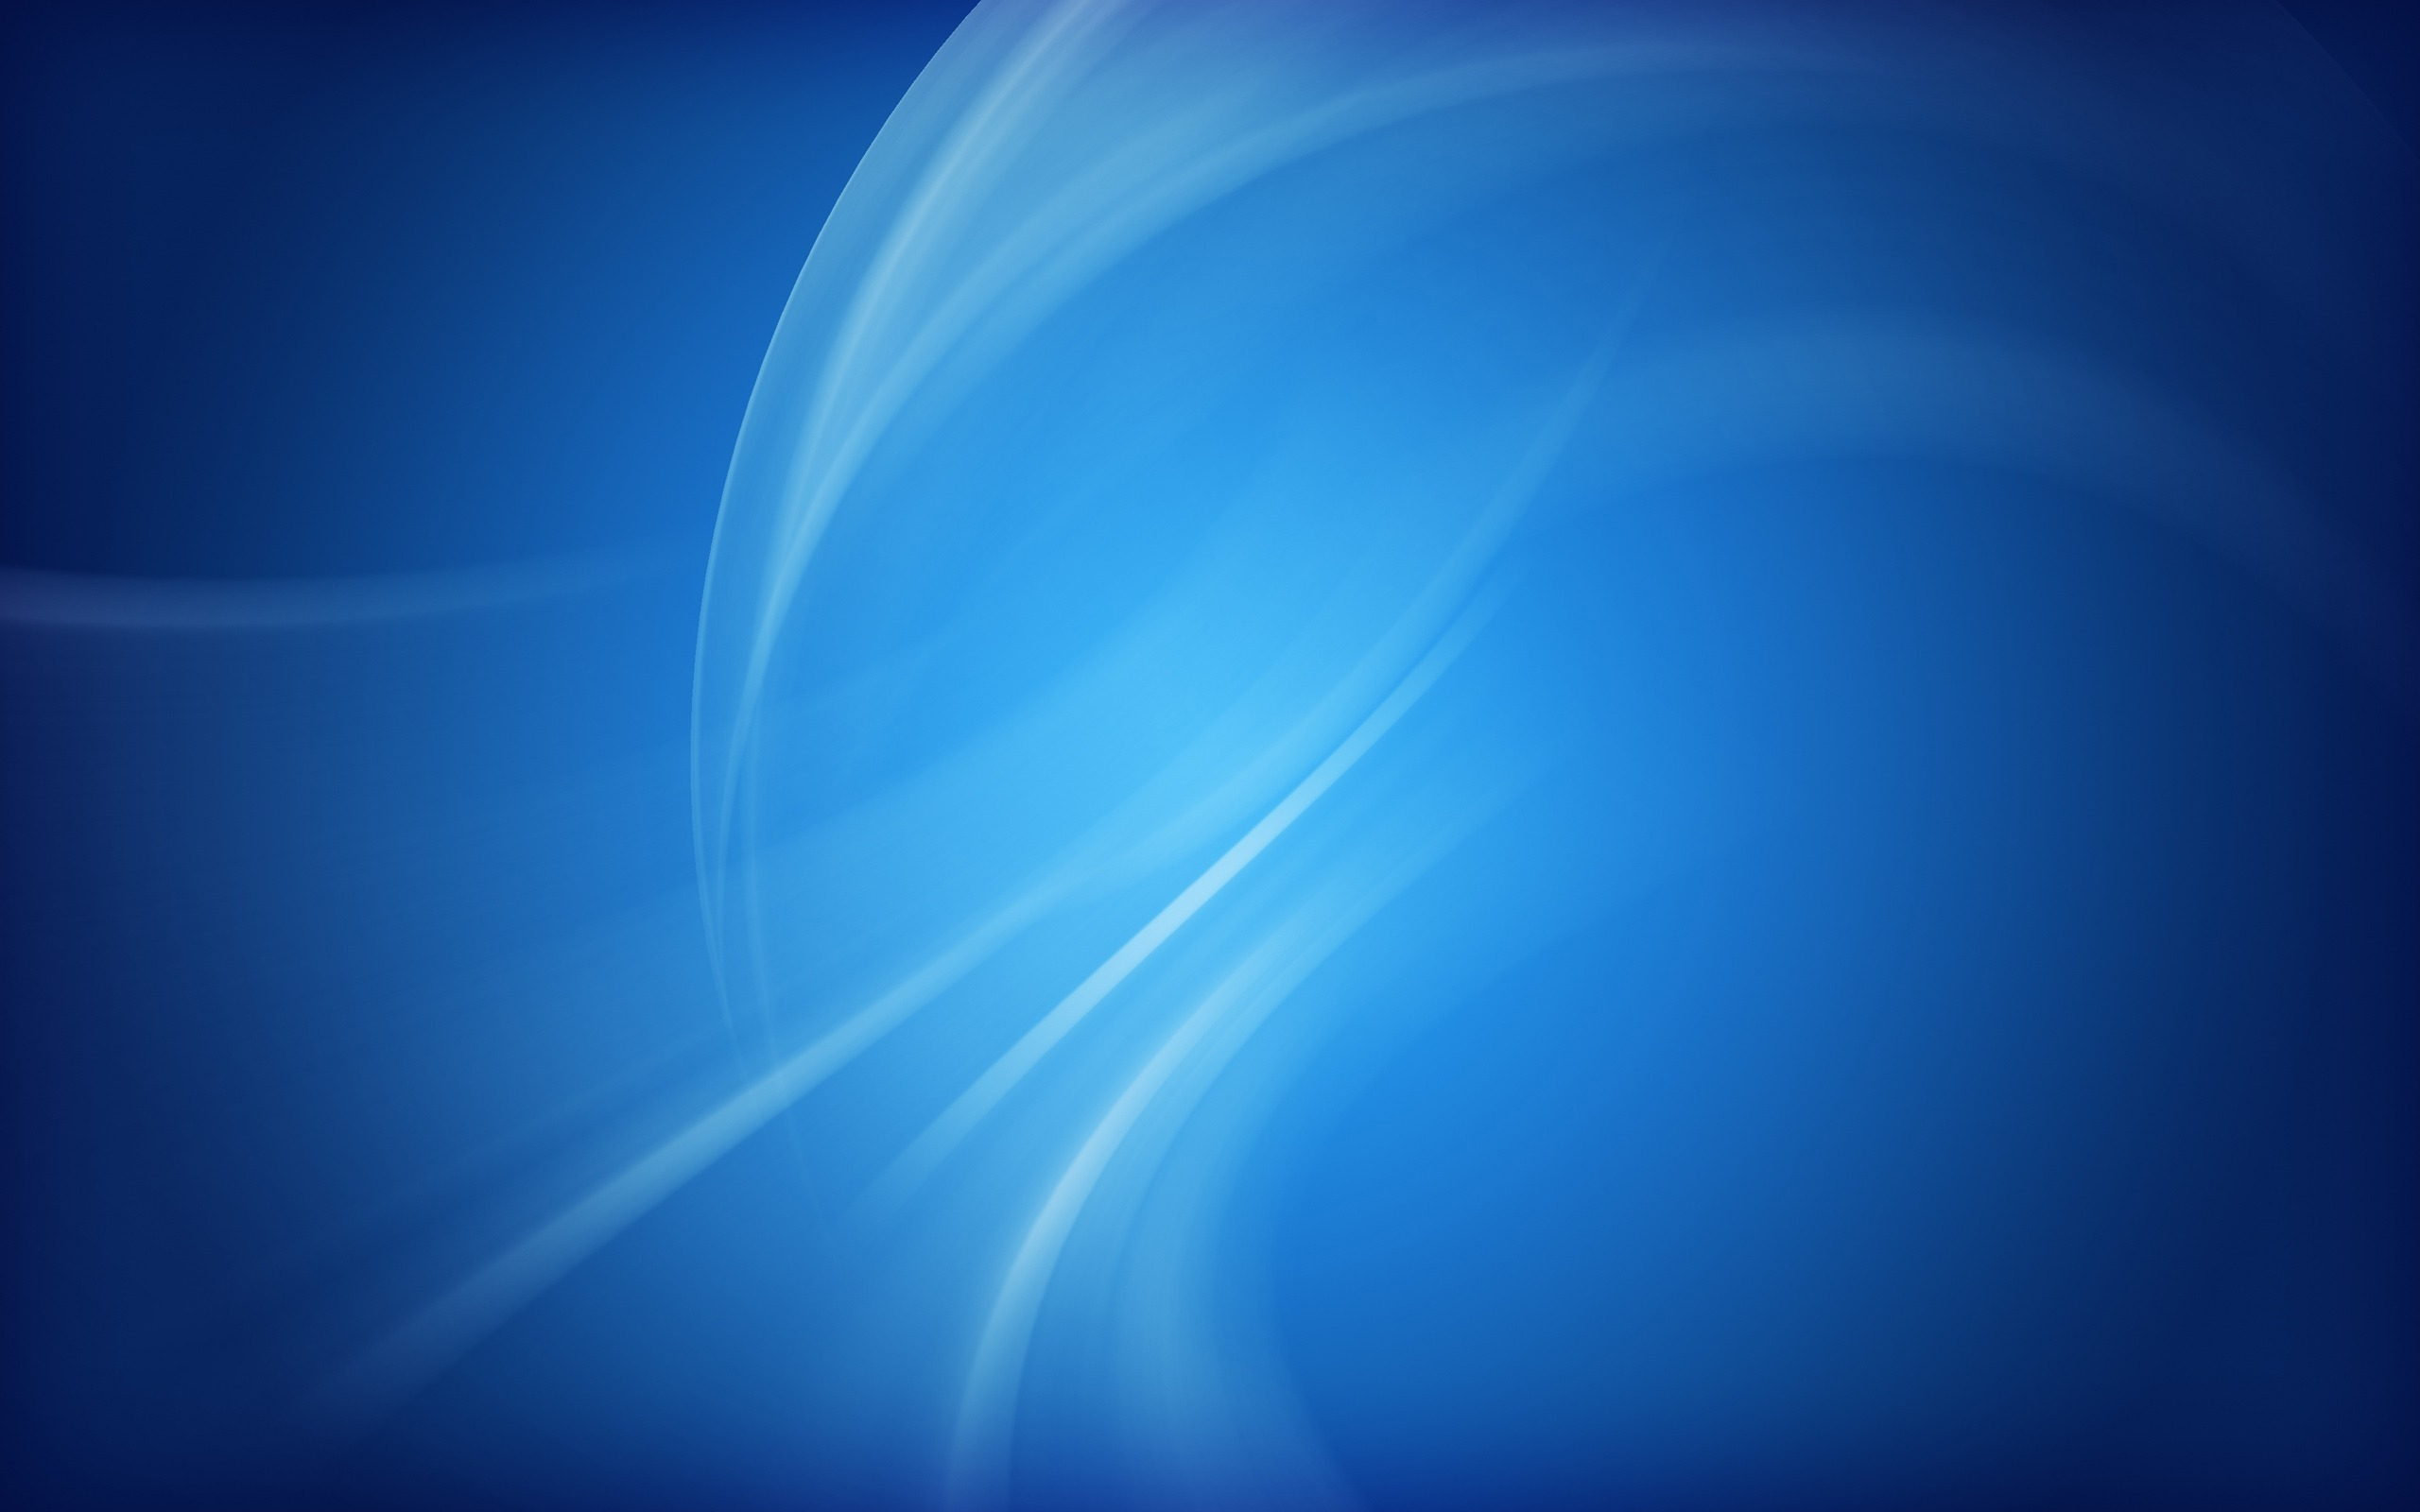 Line Texture Background : Blue and white background gallery wallpaper free